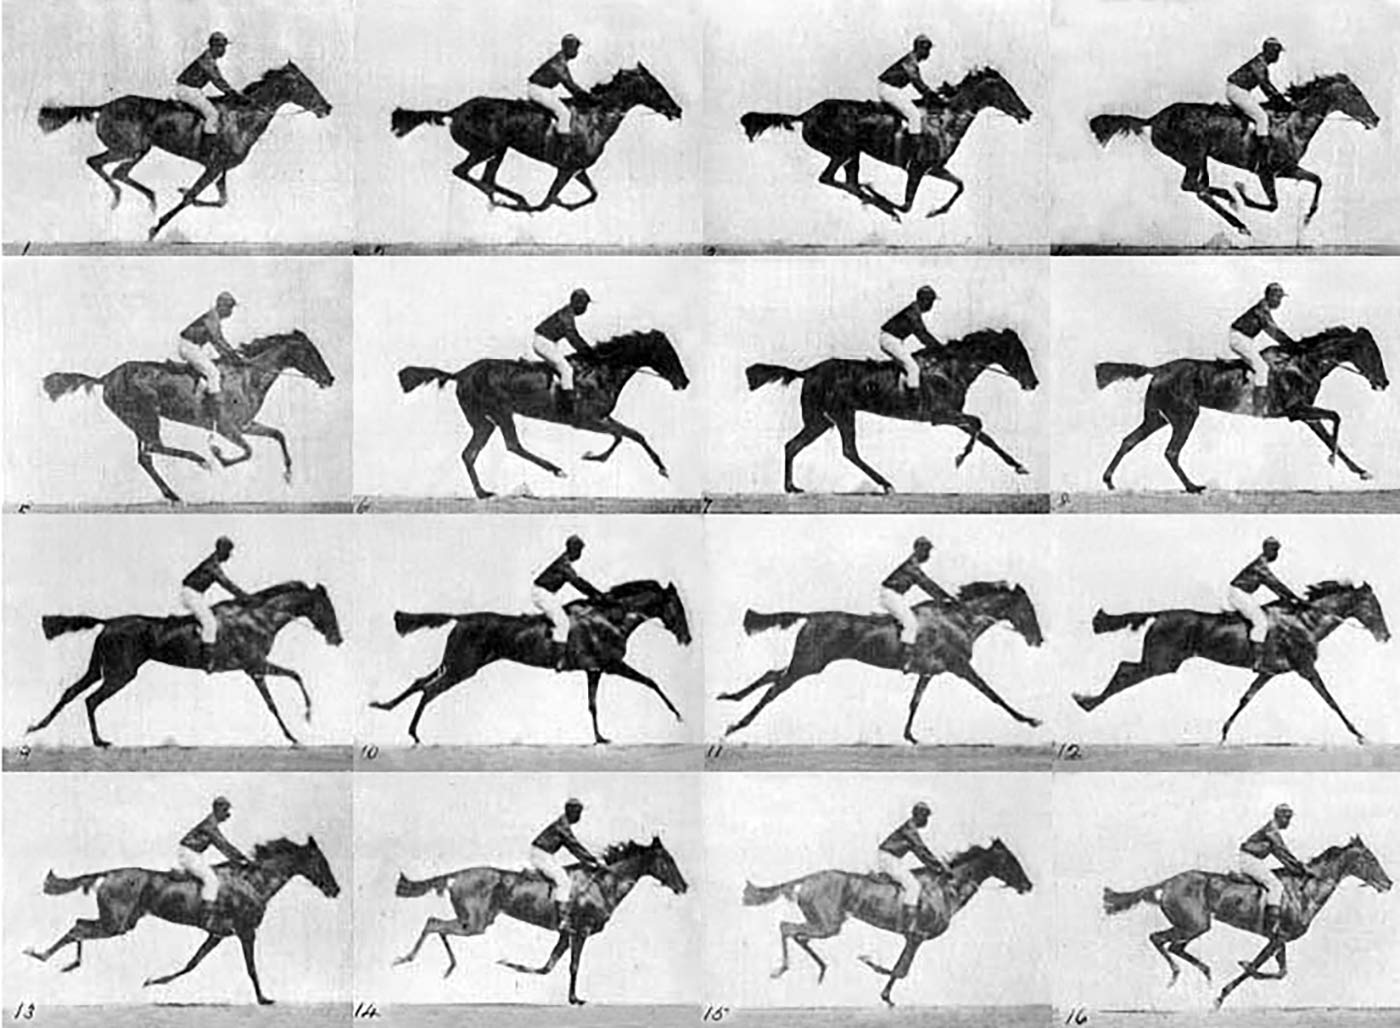 Sequence of a race horse galloping. Photos taken by Eadweard Muybridge (died 1904), first published in 1887 at Philadelphia.